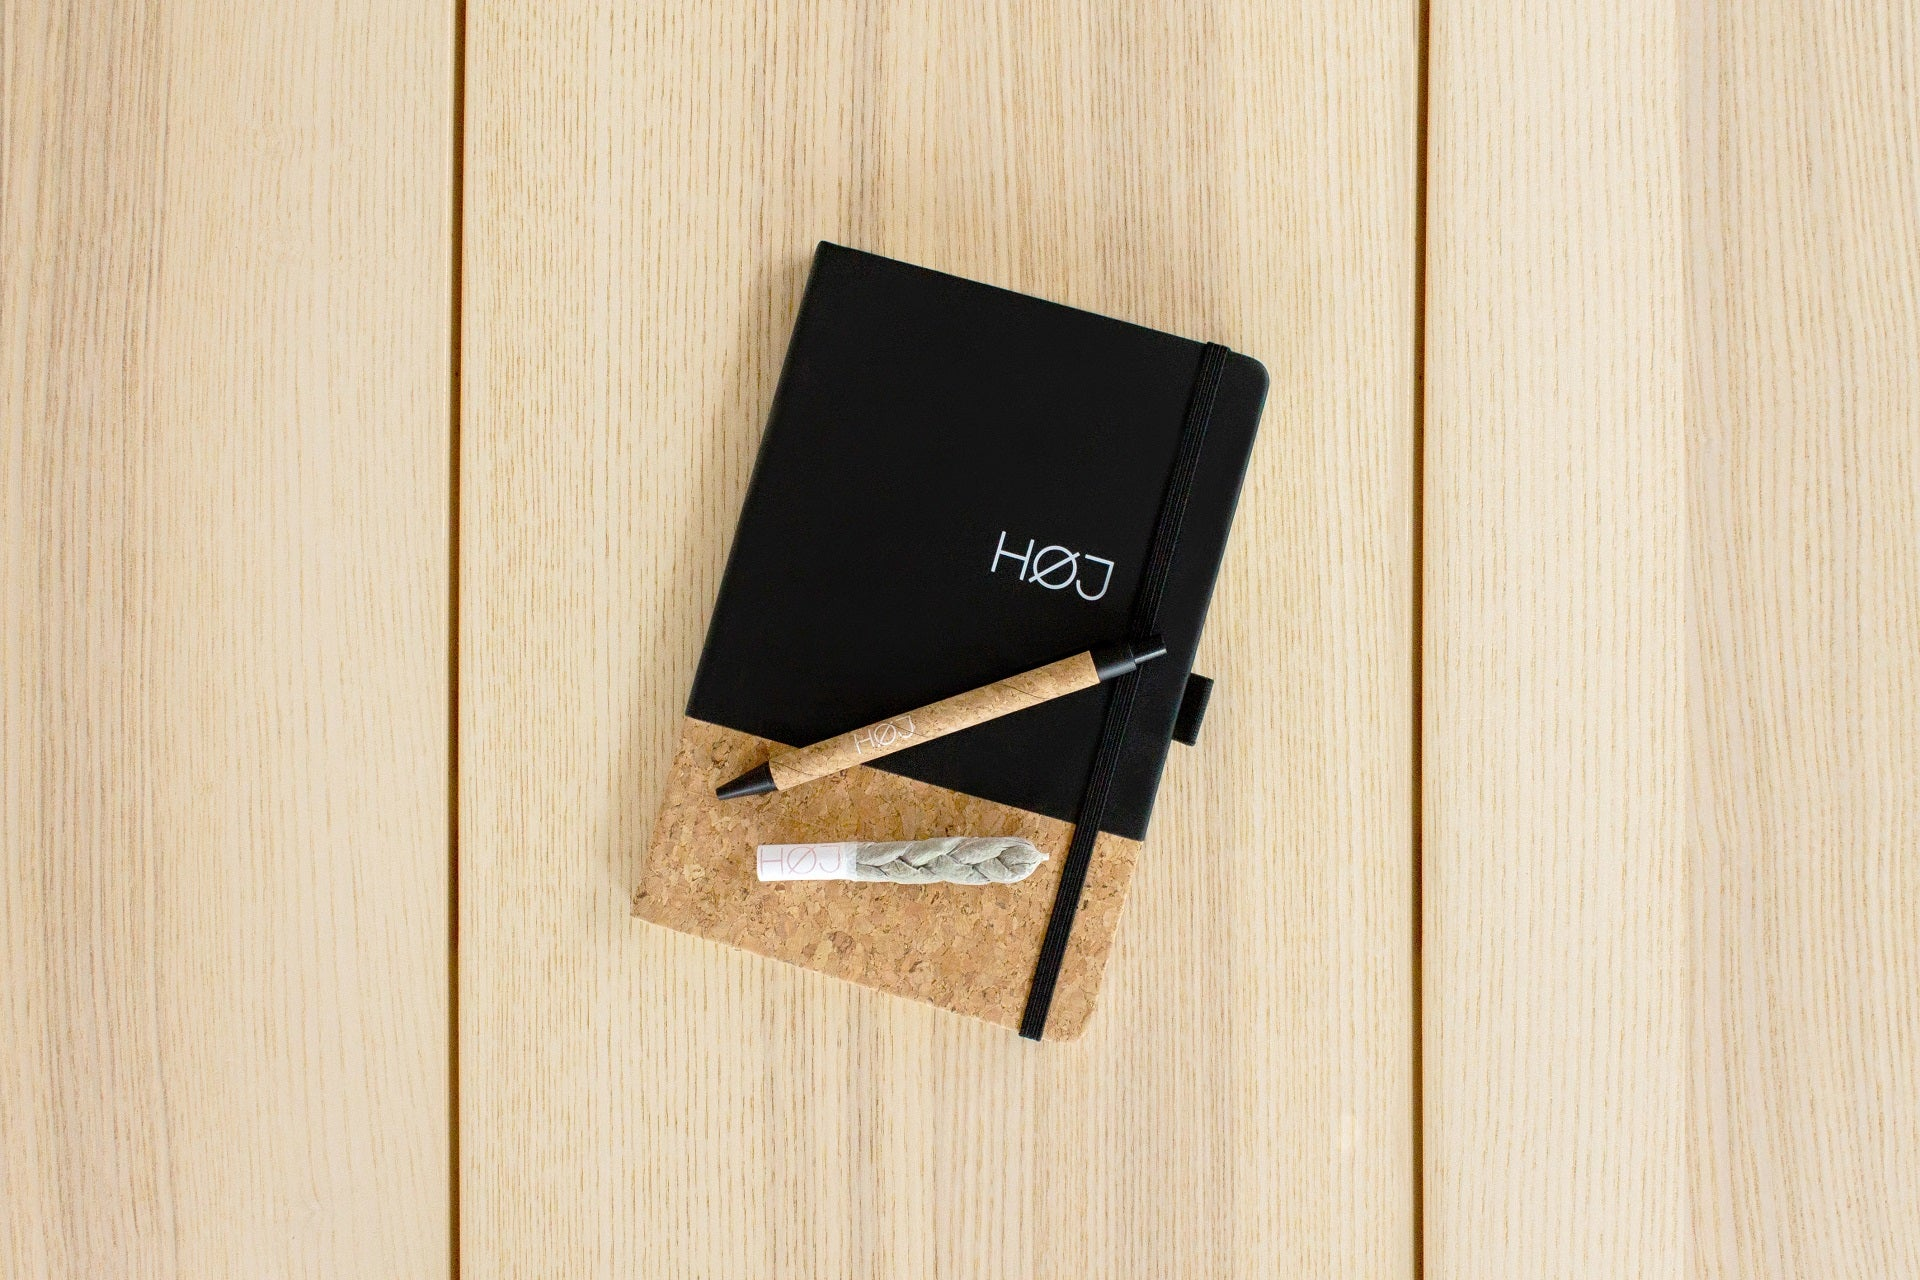 A fancy braided joint on a notebook with a pen